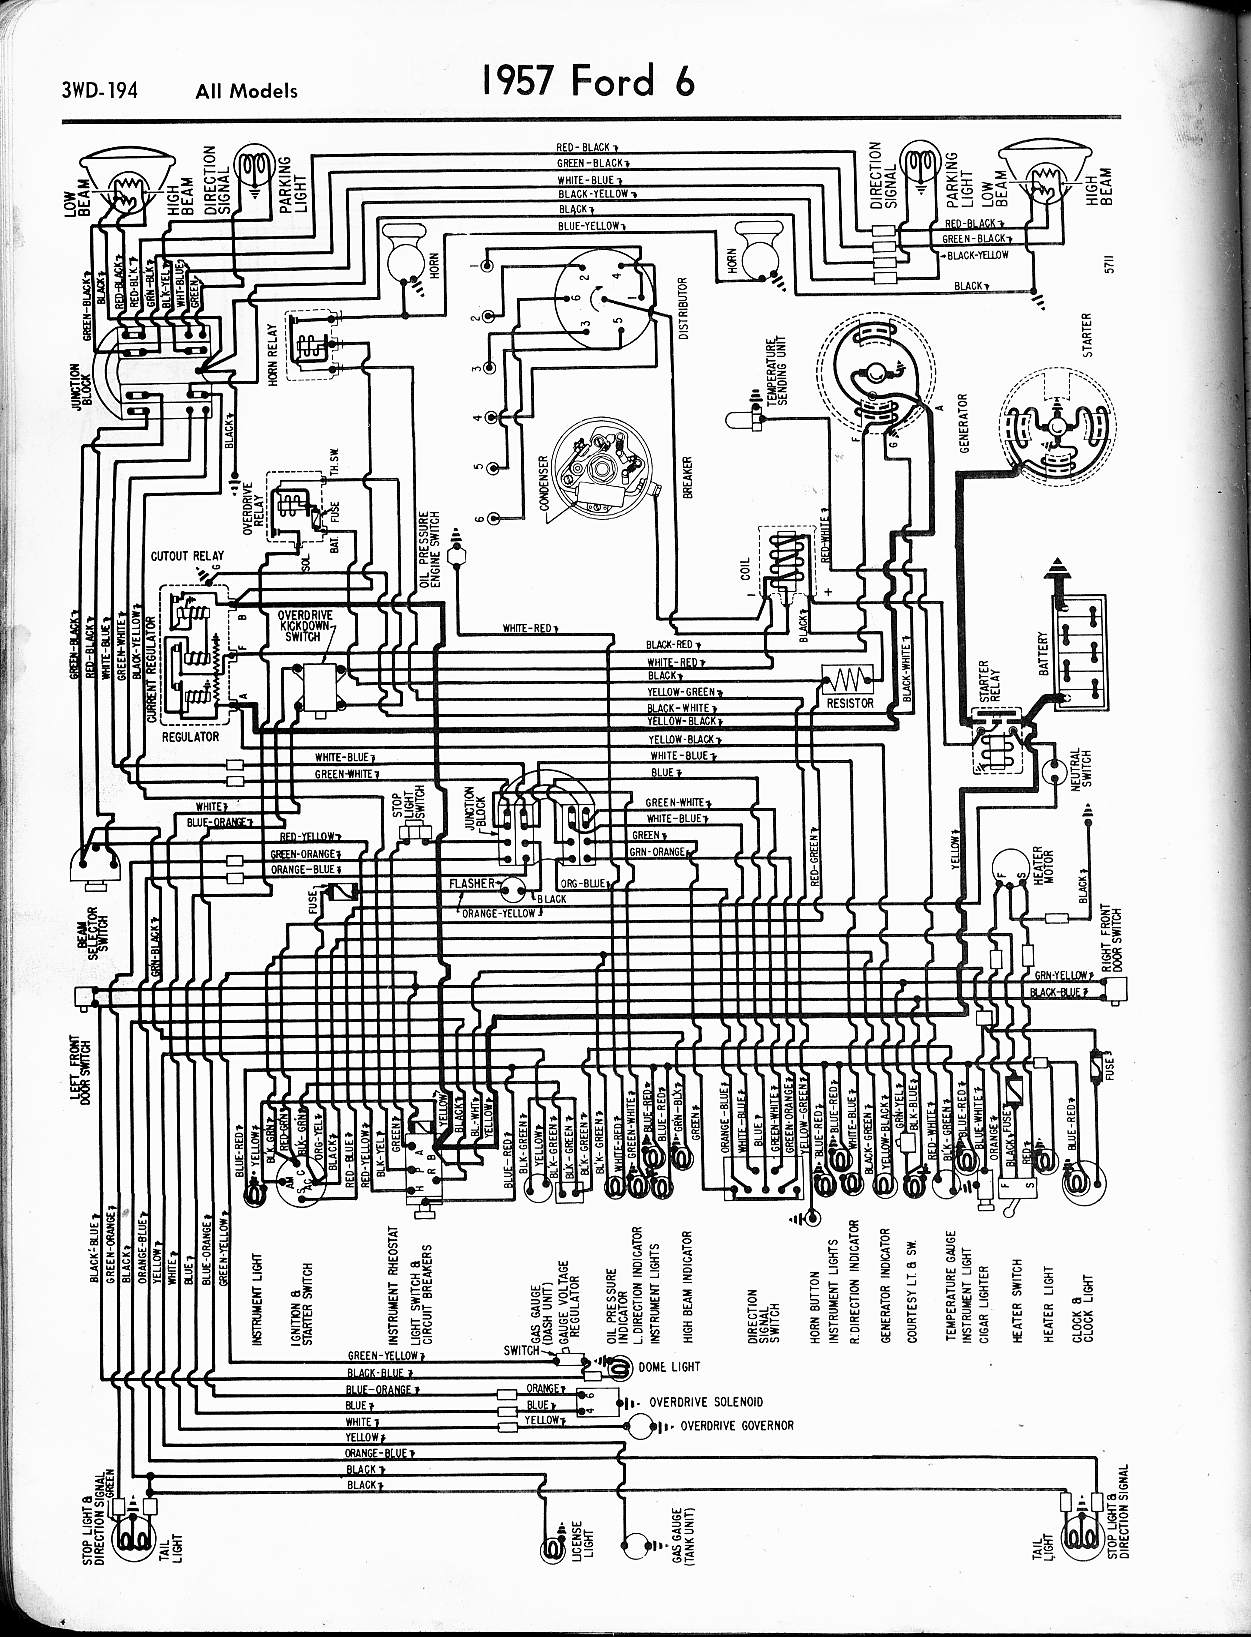 1953 Ford Turn Signal Switch Wiring Diagram Quick Start Guide Of 1949 1950 Online Rh 18 6 14 Tokyo Running Sushi De Stop 1975